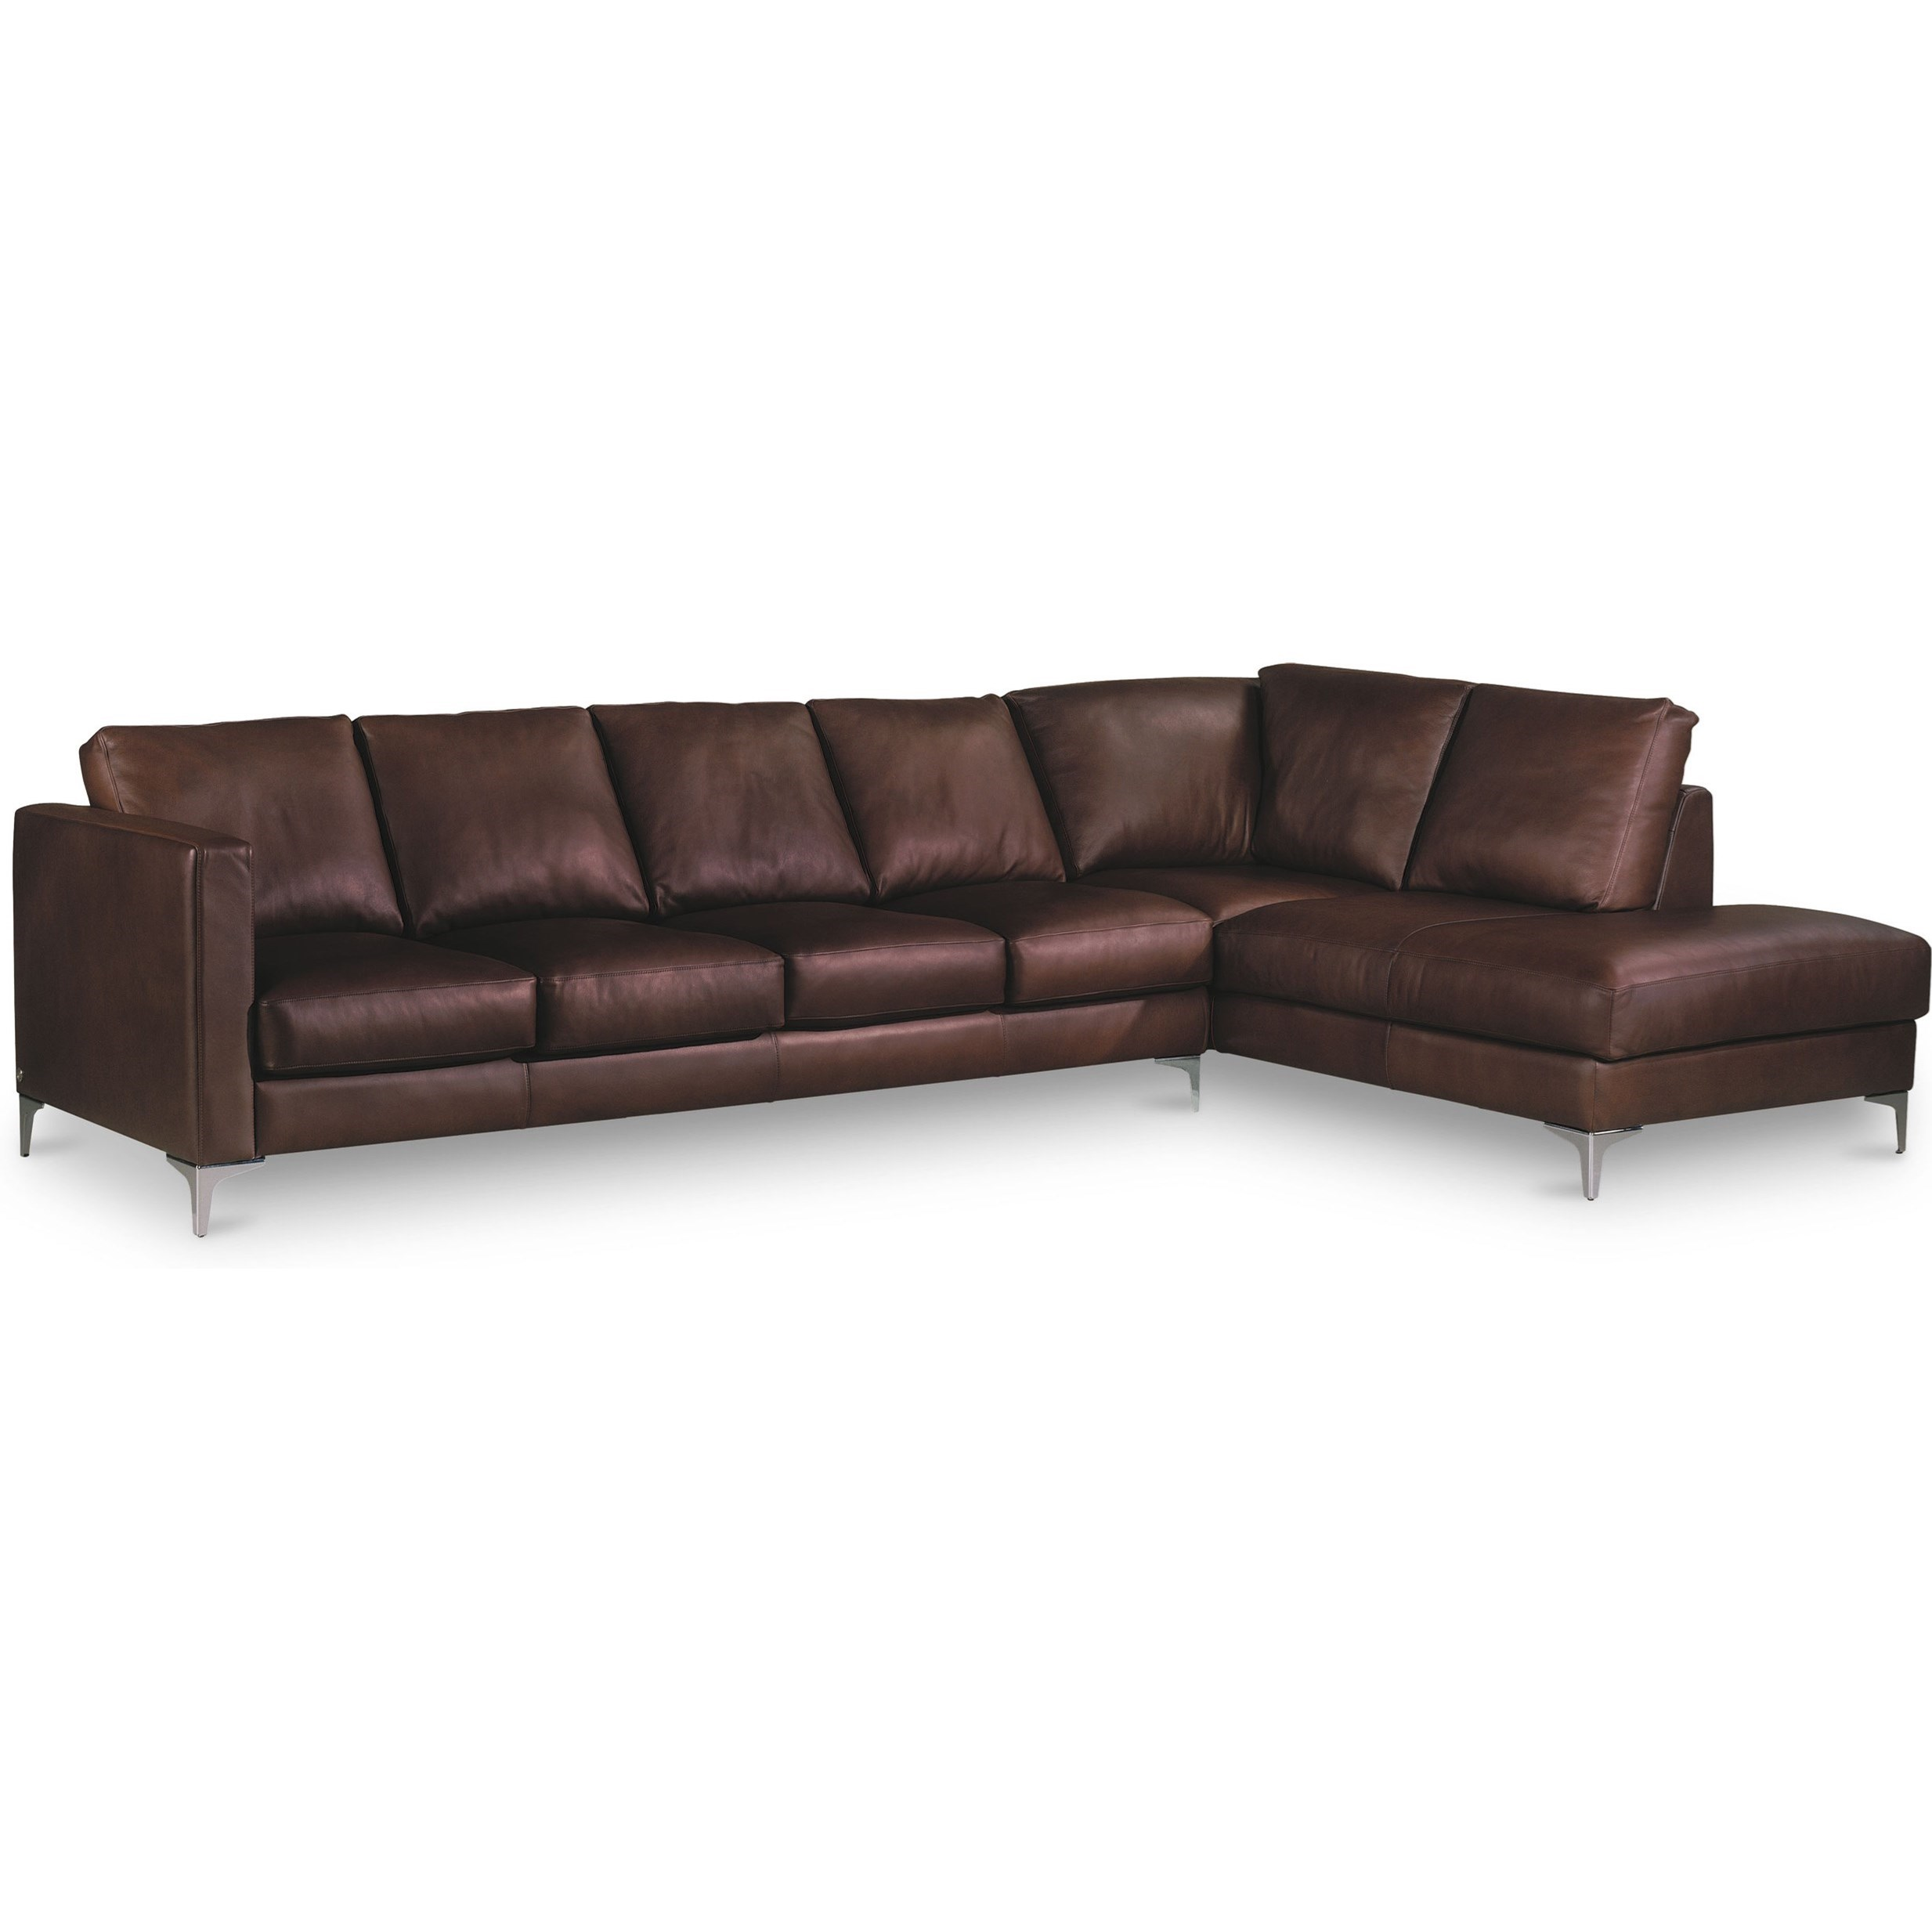 Kendall 5-Seat Sectional w/ Left Arm Sitting Chaise by American Leather at Story & Lee Furniture